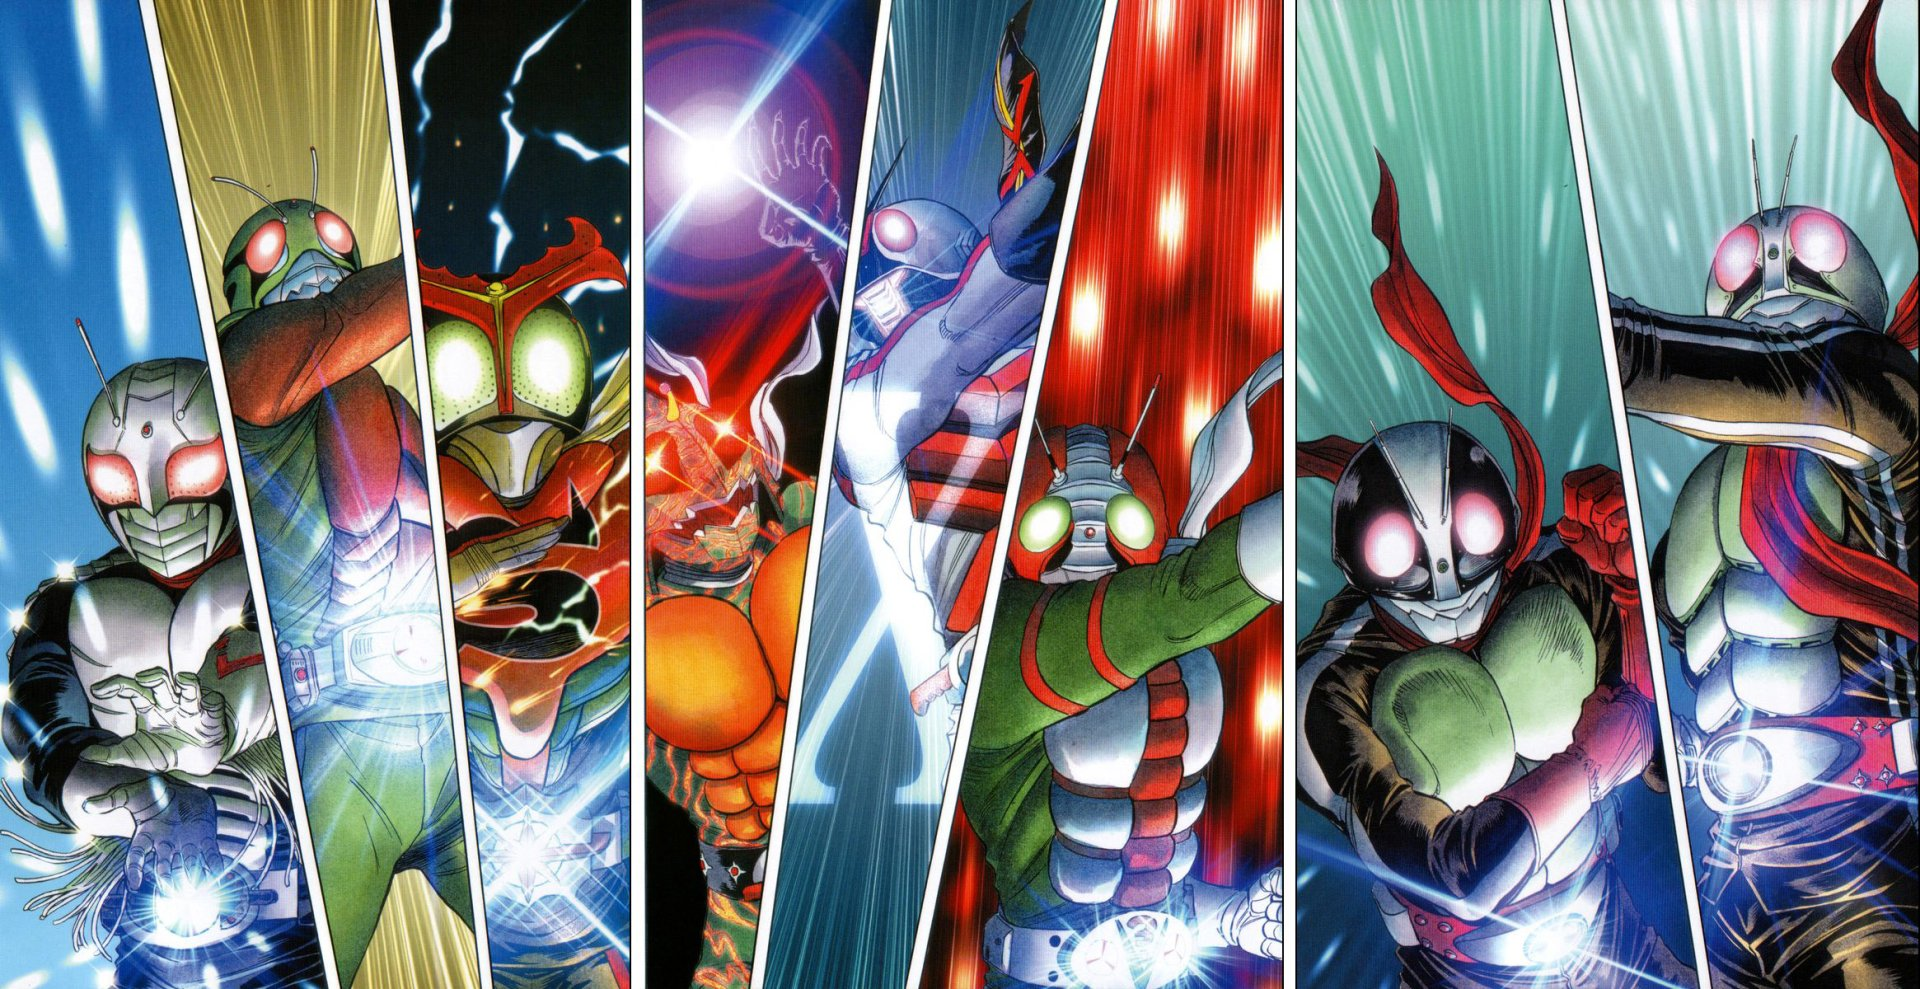 Mighty Morphin Power Rangers Iphone Wallpaper Kamen Rider Full Hd Wallpaper And Background Image